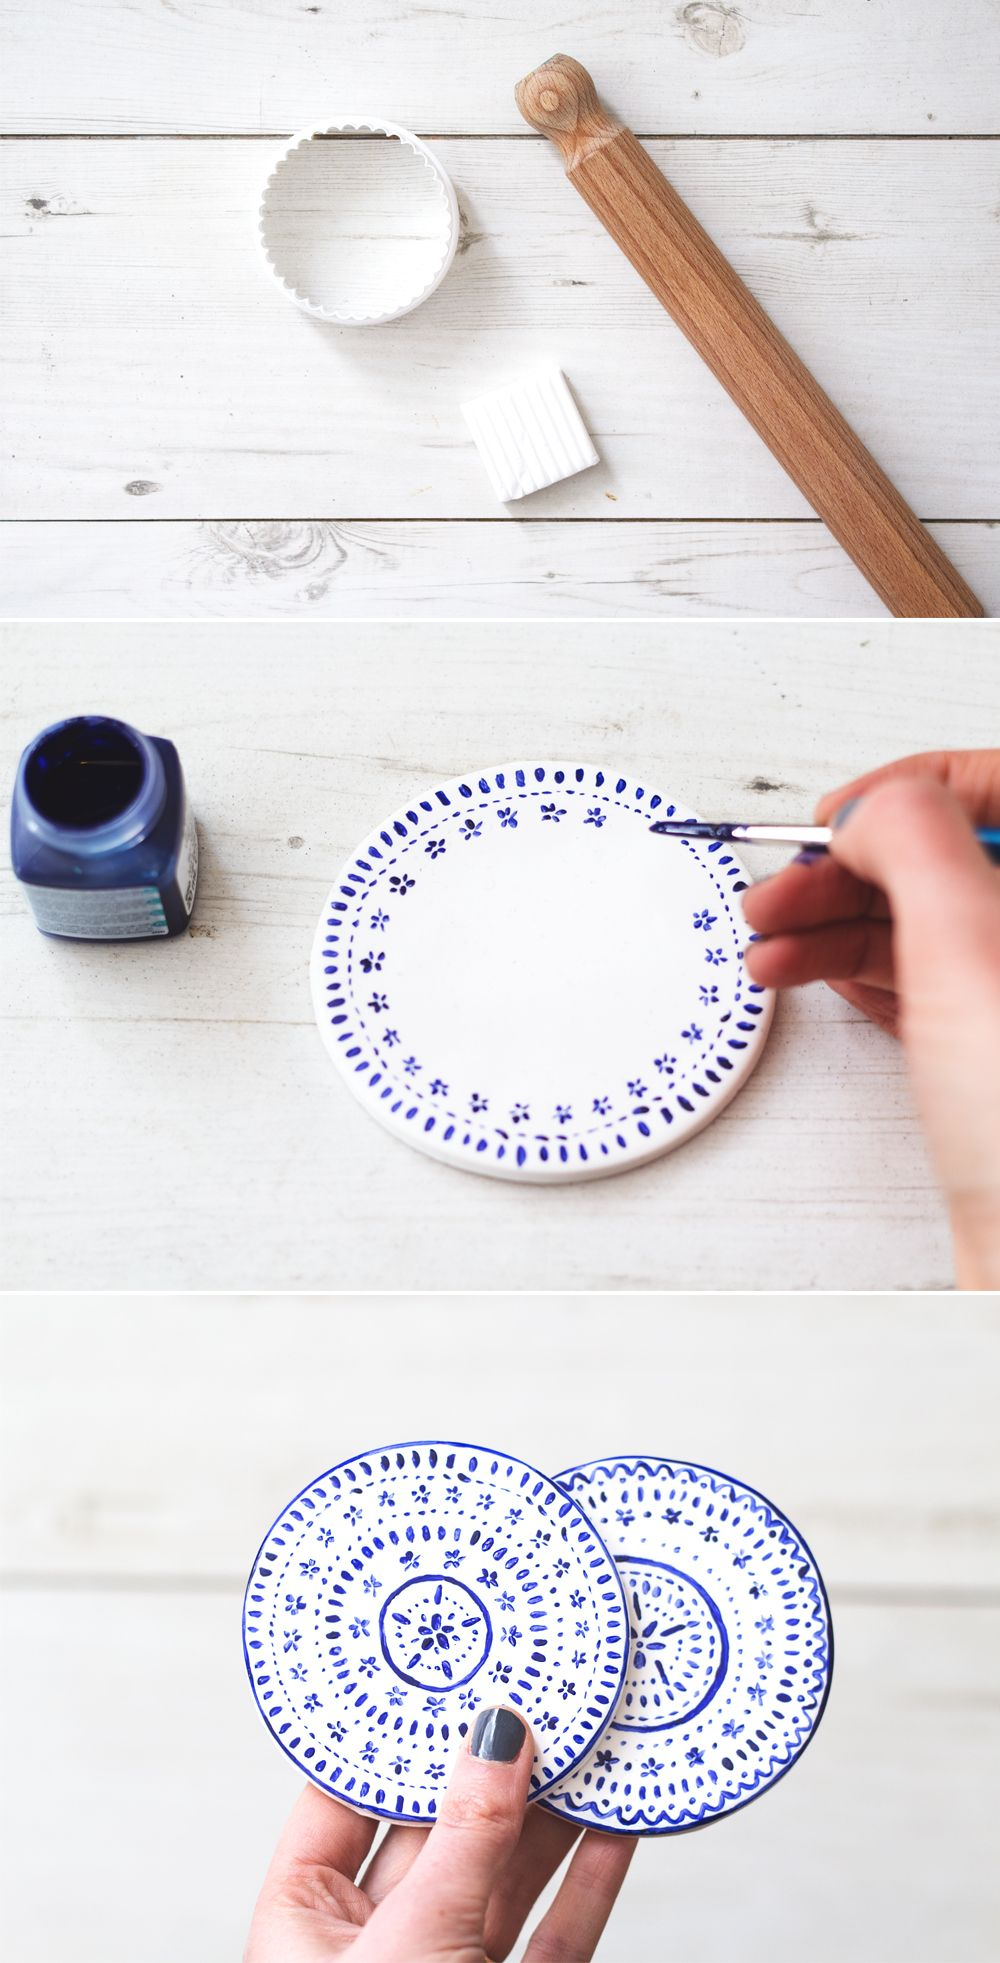 20 Incredibly Neat DIY Coasters Ideas To Make This Weekend